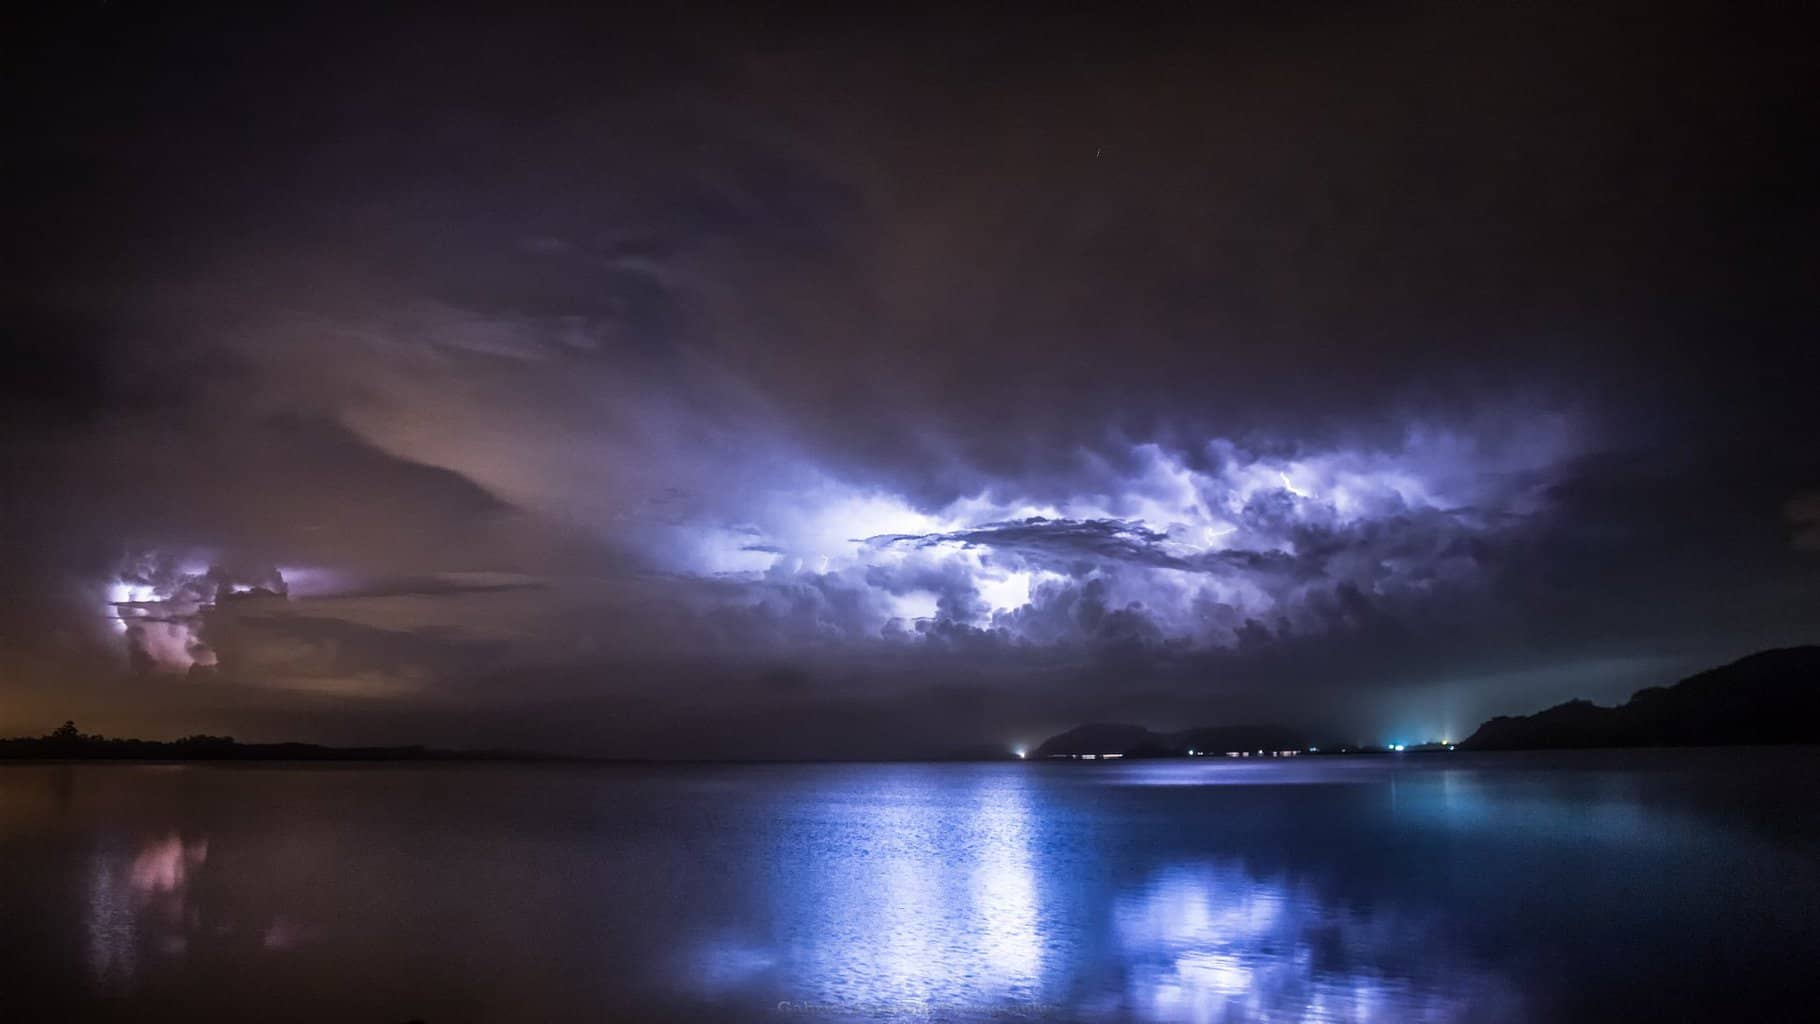 Storm being reflected on the Lagoon! Torres, Rio Grande do Sul, Brazil | Yesterday night May 18, 2018!